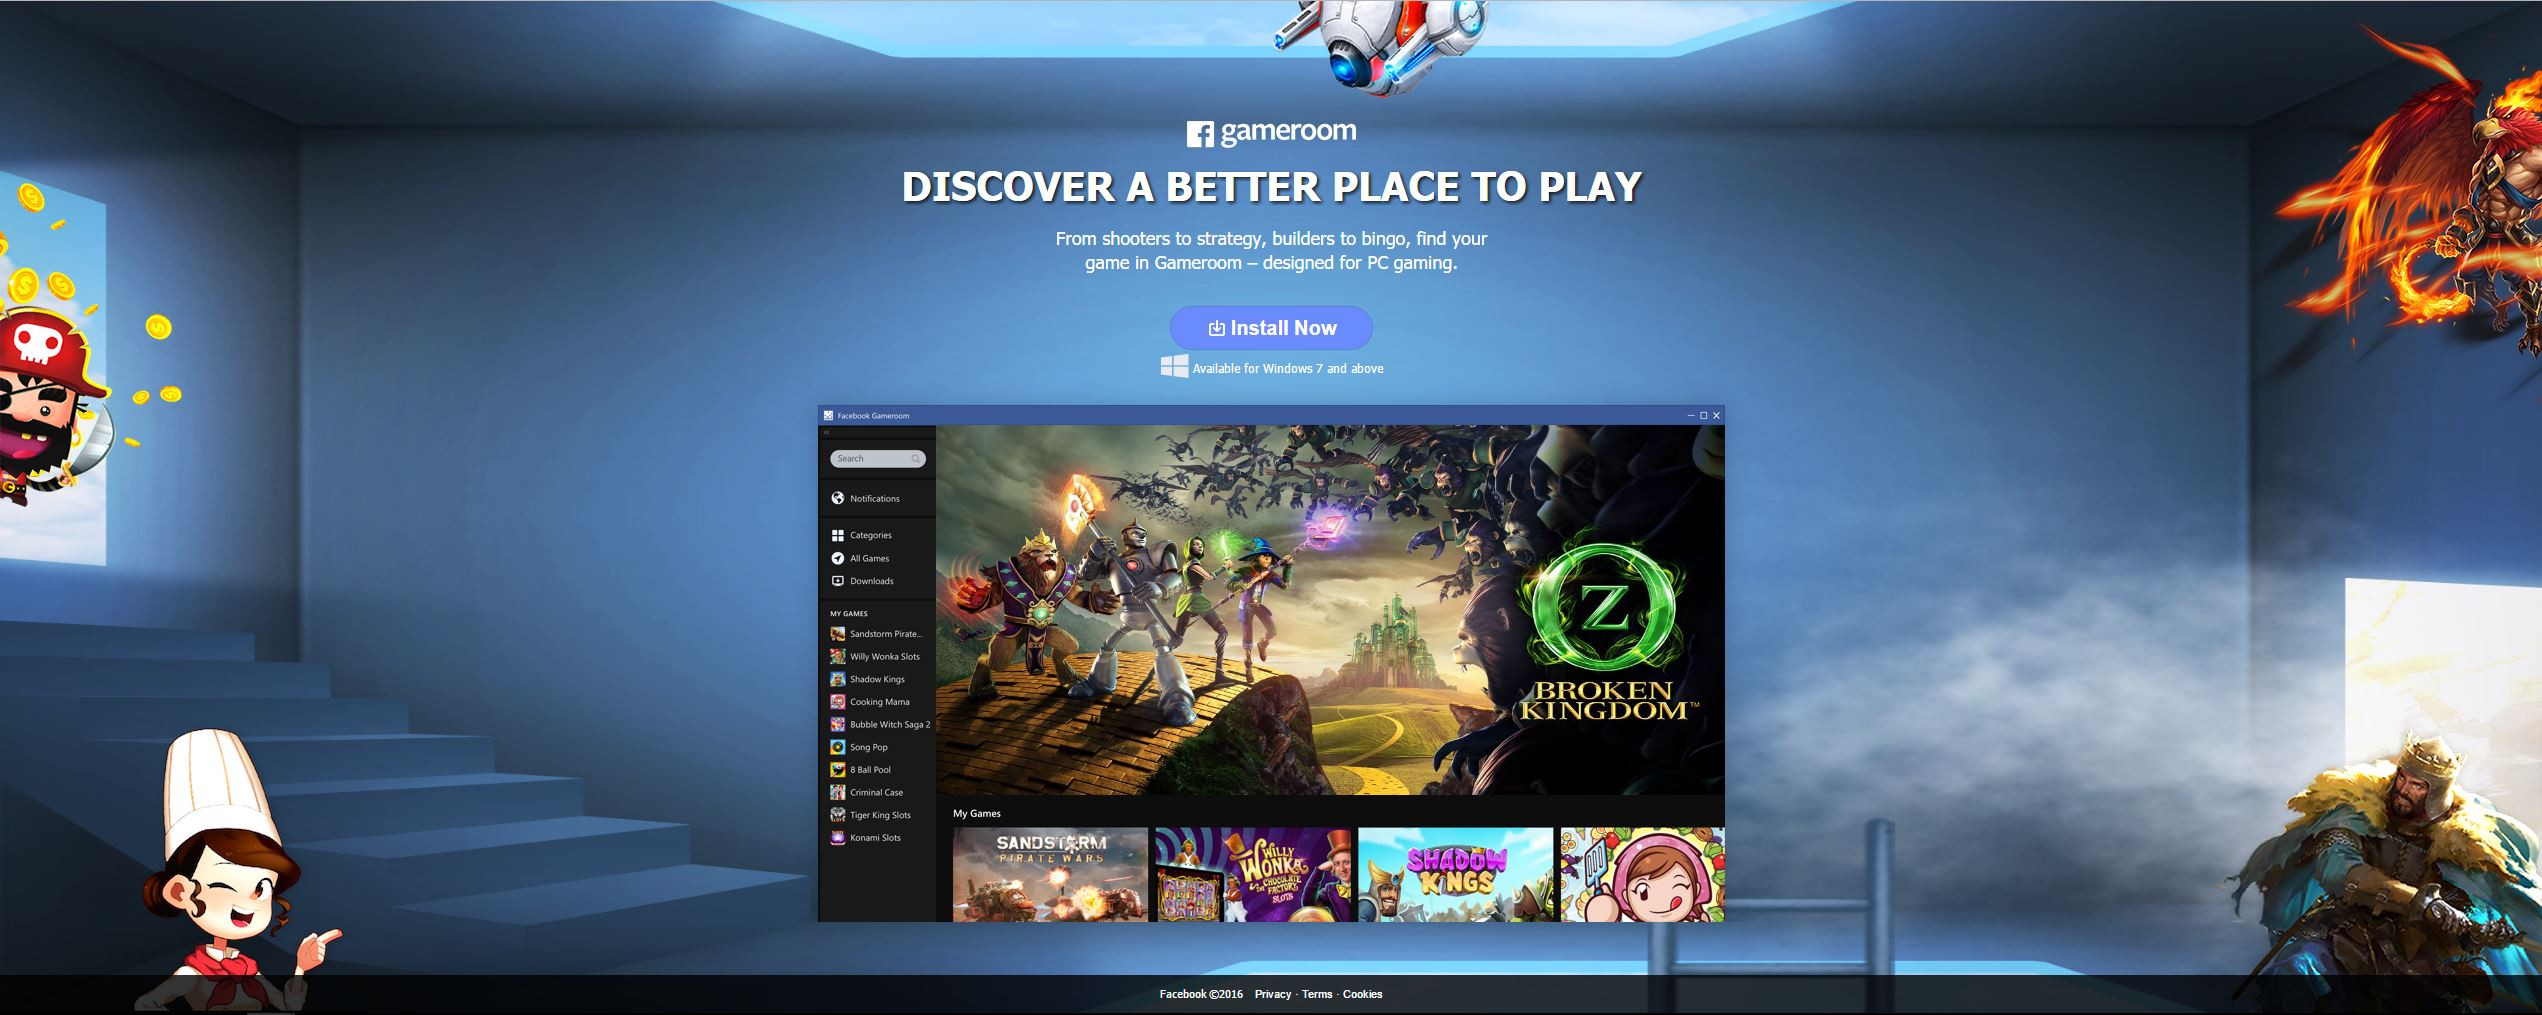 Best ideas about Facebook Game Room . Save or Pin Gameroom – The Next Steam • World Report Now Now.